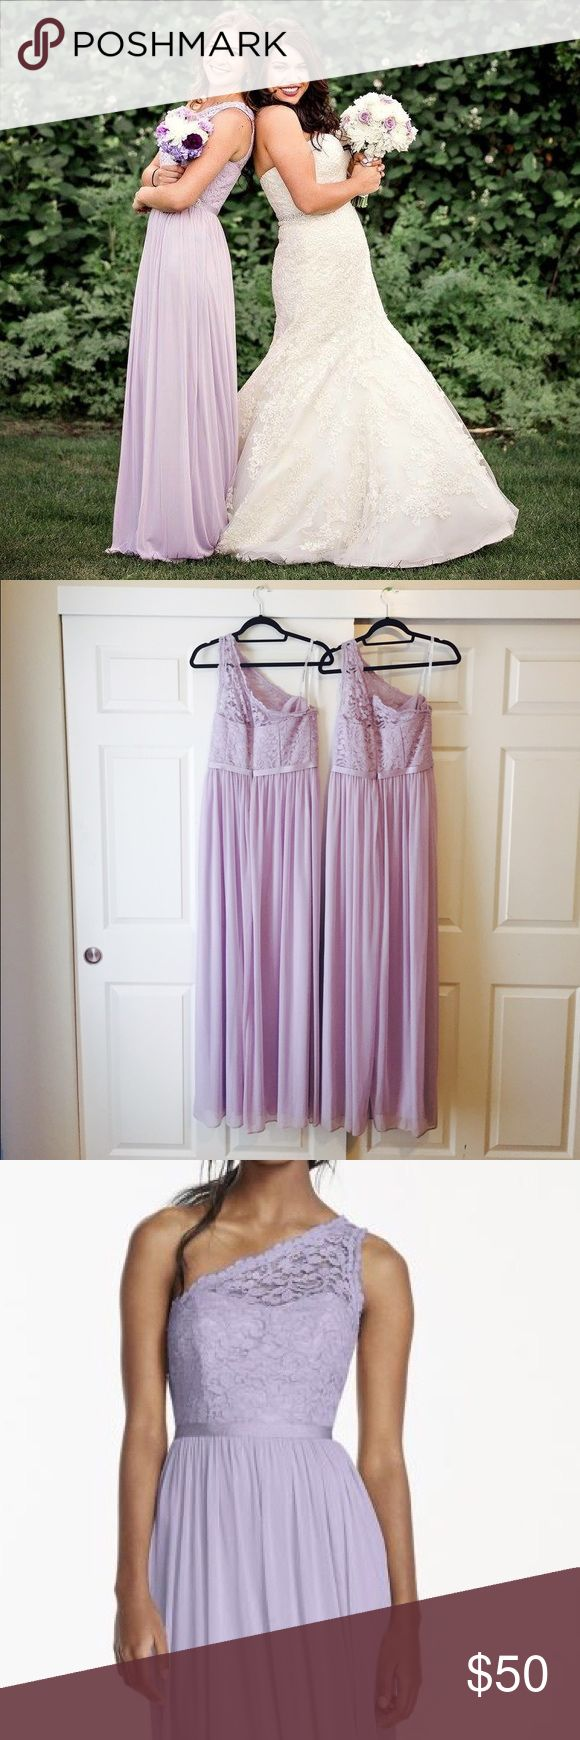 Gorgeous David's Bridal Bridesmaid Dress Beautiful one shoulder lace long bridesmaid dress. Lavender/iris. Worn Once and in perfect condition! David's Bridal Dresses Long Sleeve